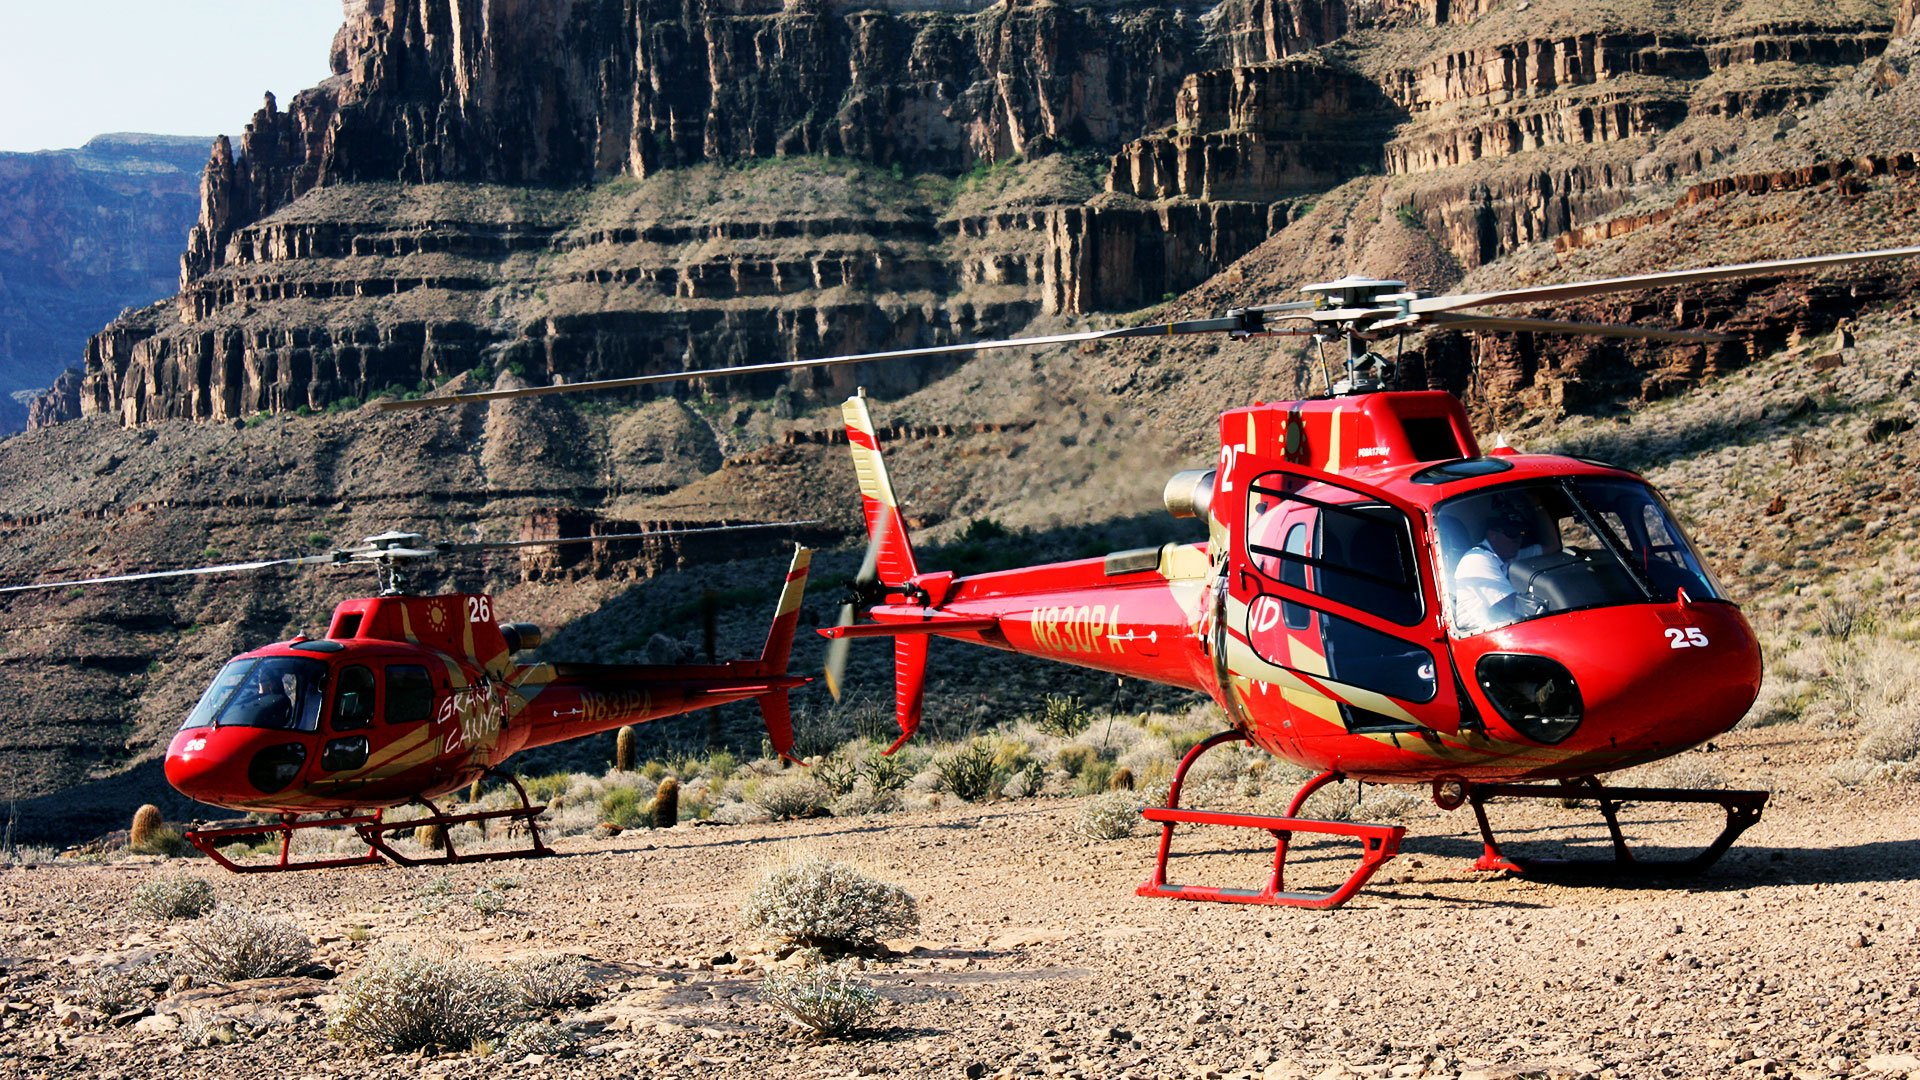 Two red EC-130 helicopters landed at the bottom of Grand Canyon West